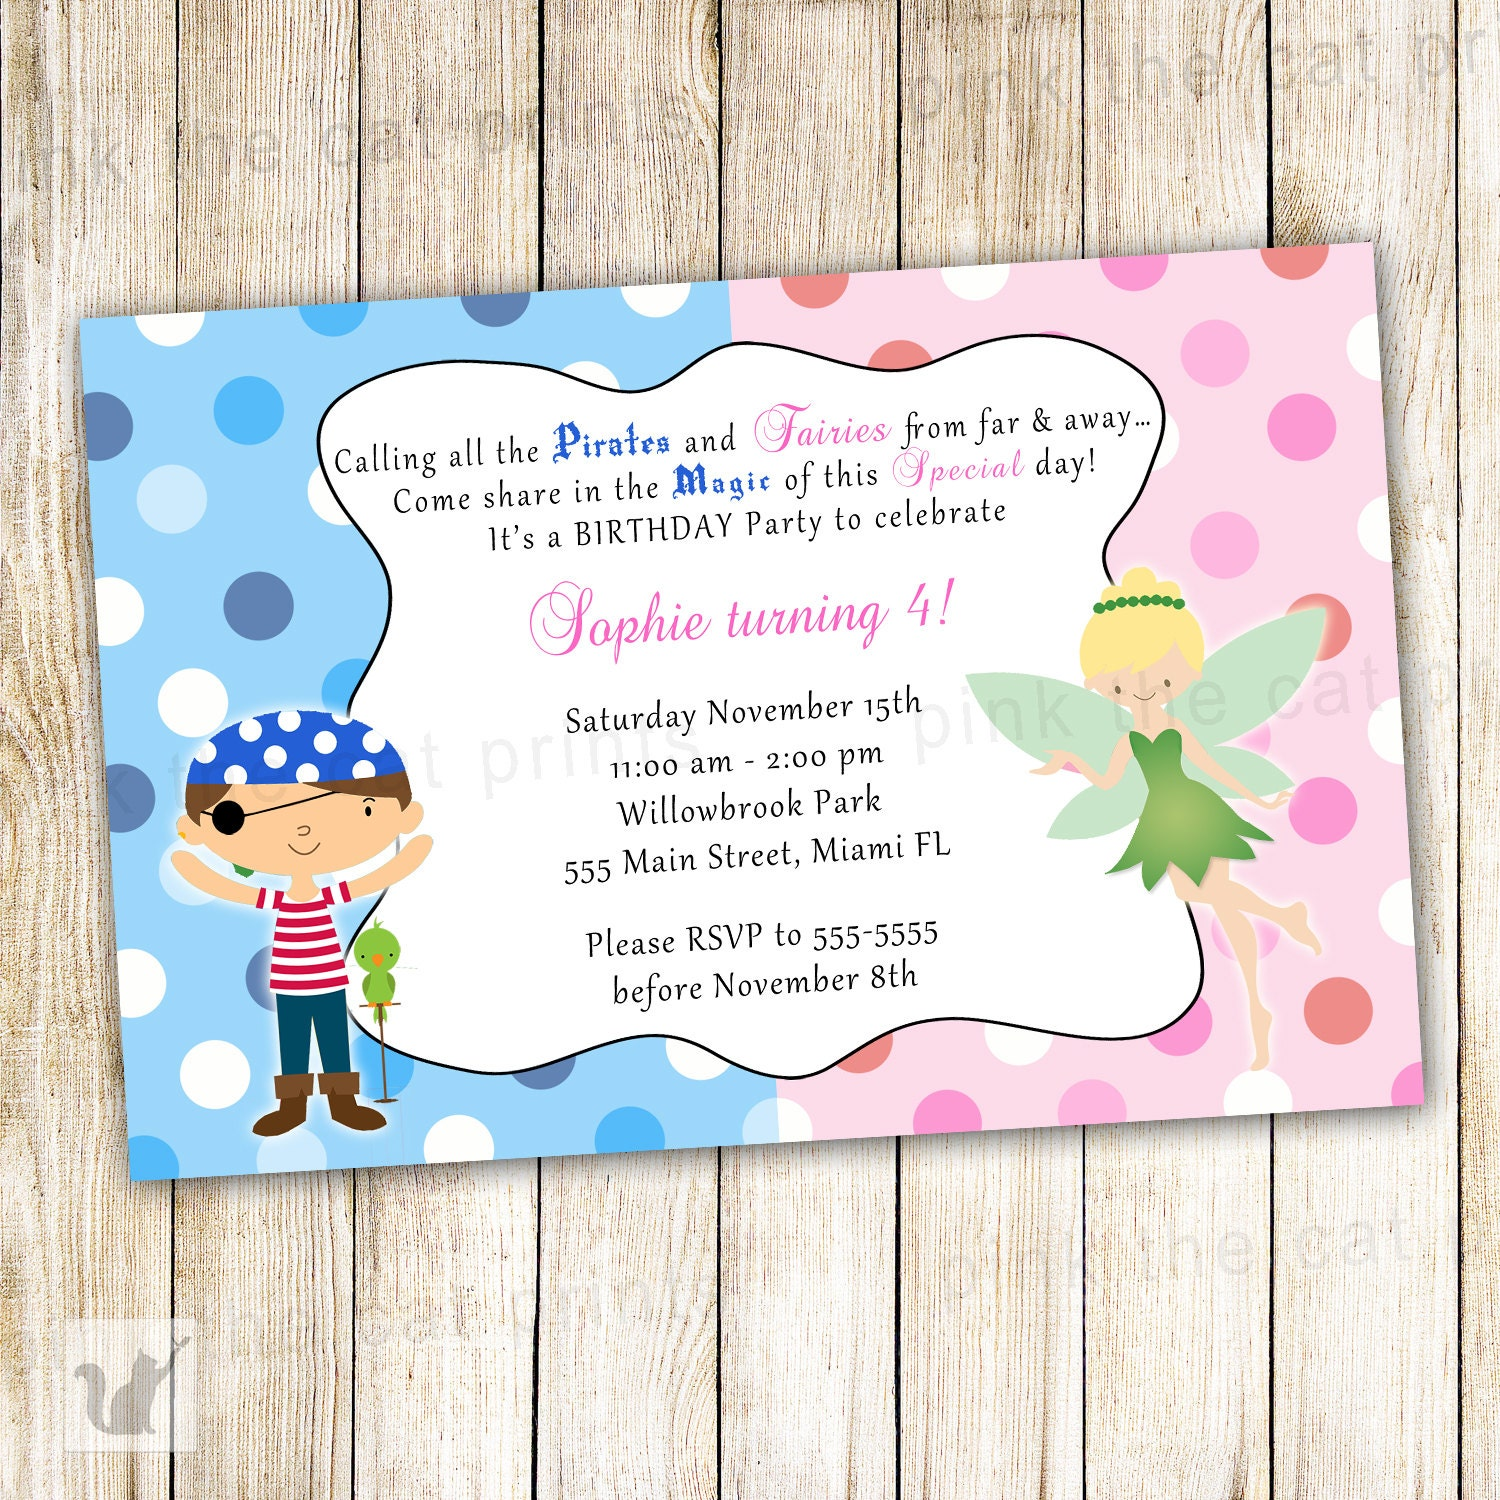 Personalized kids birthday invitations selol ink personalized kids birthday invitations stopboris Image collections